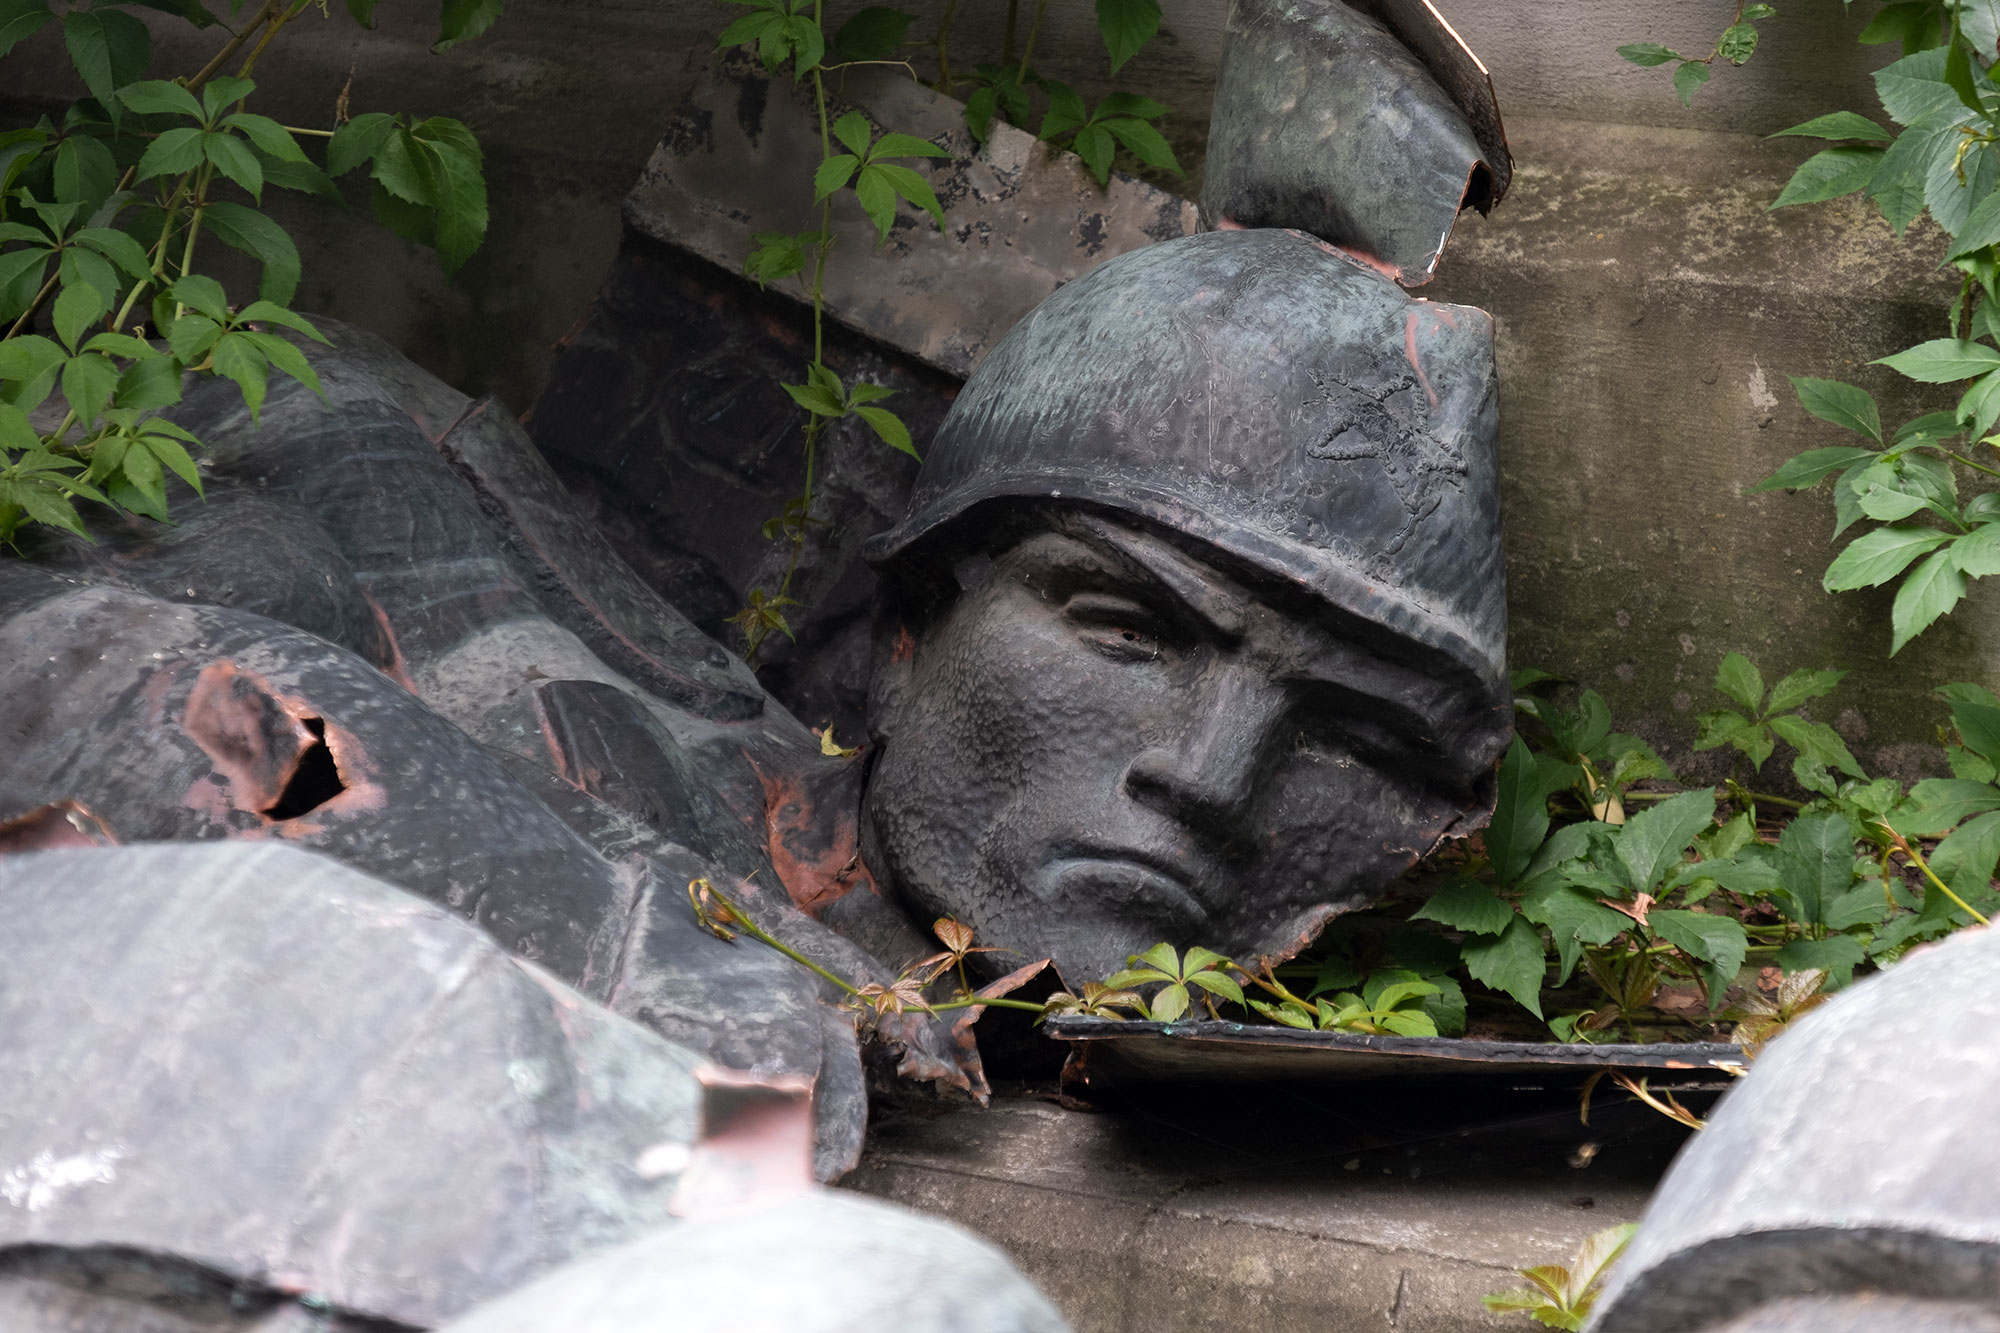 Lviv - Fragments of a Soviet monument at the Territory of Terror memorial site